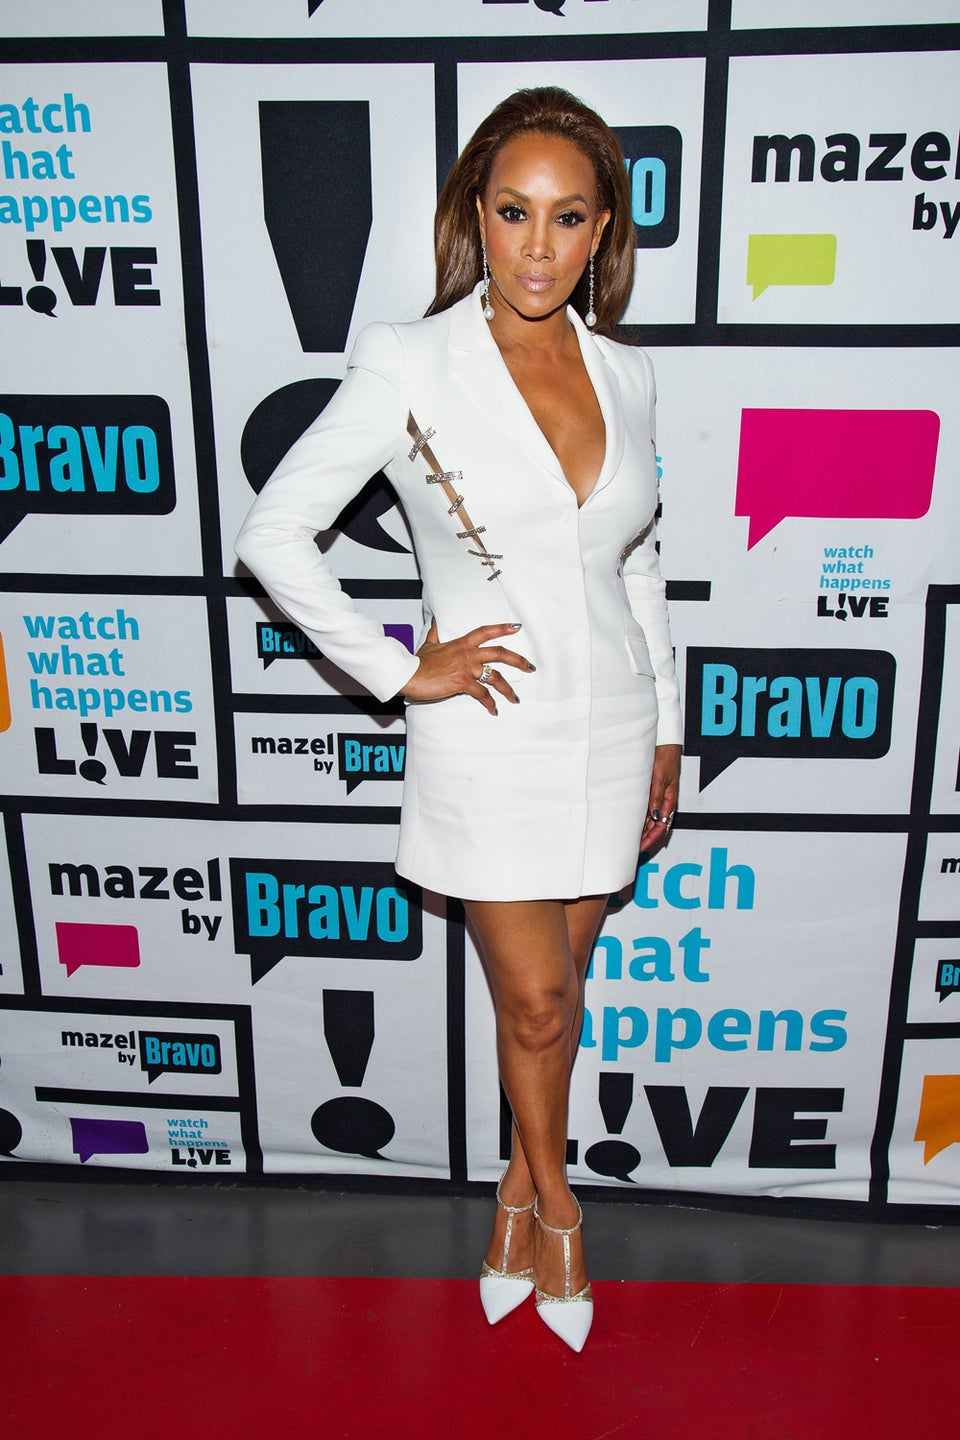 Vivica A. Fox and 50 Cent Are the Latest Messy Exes on Social Media